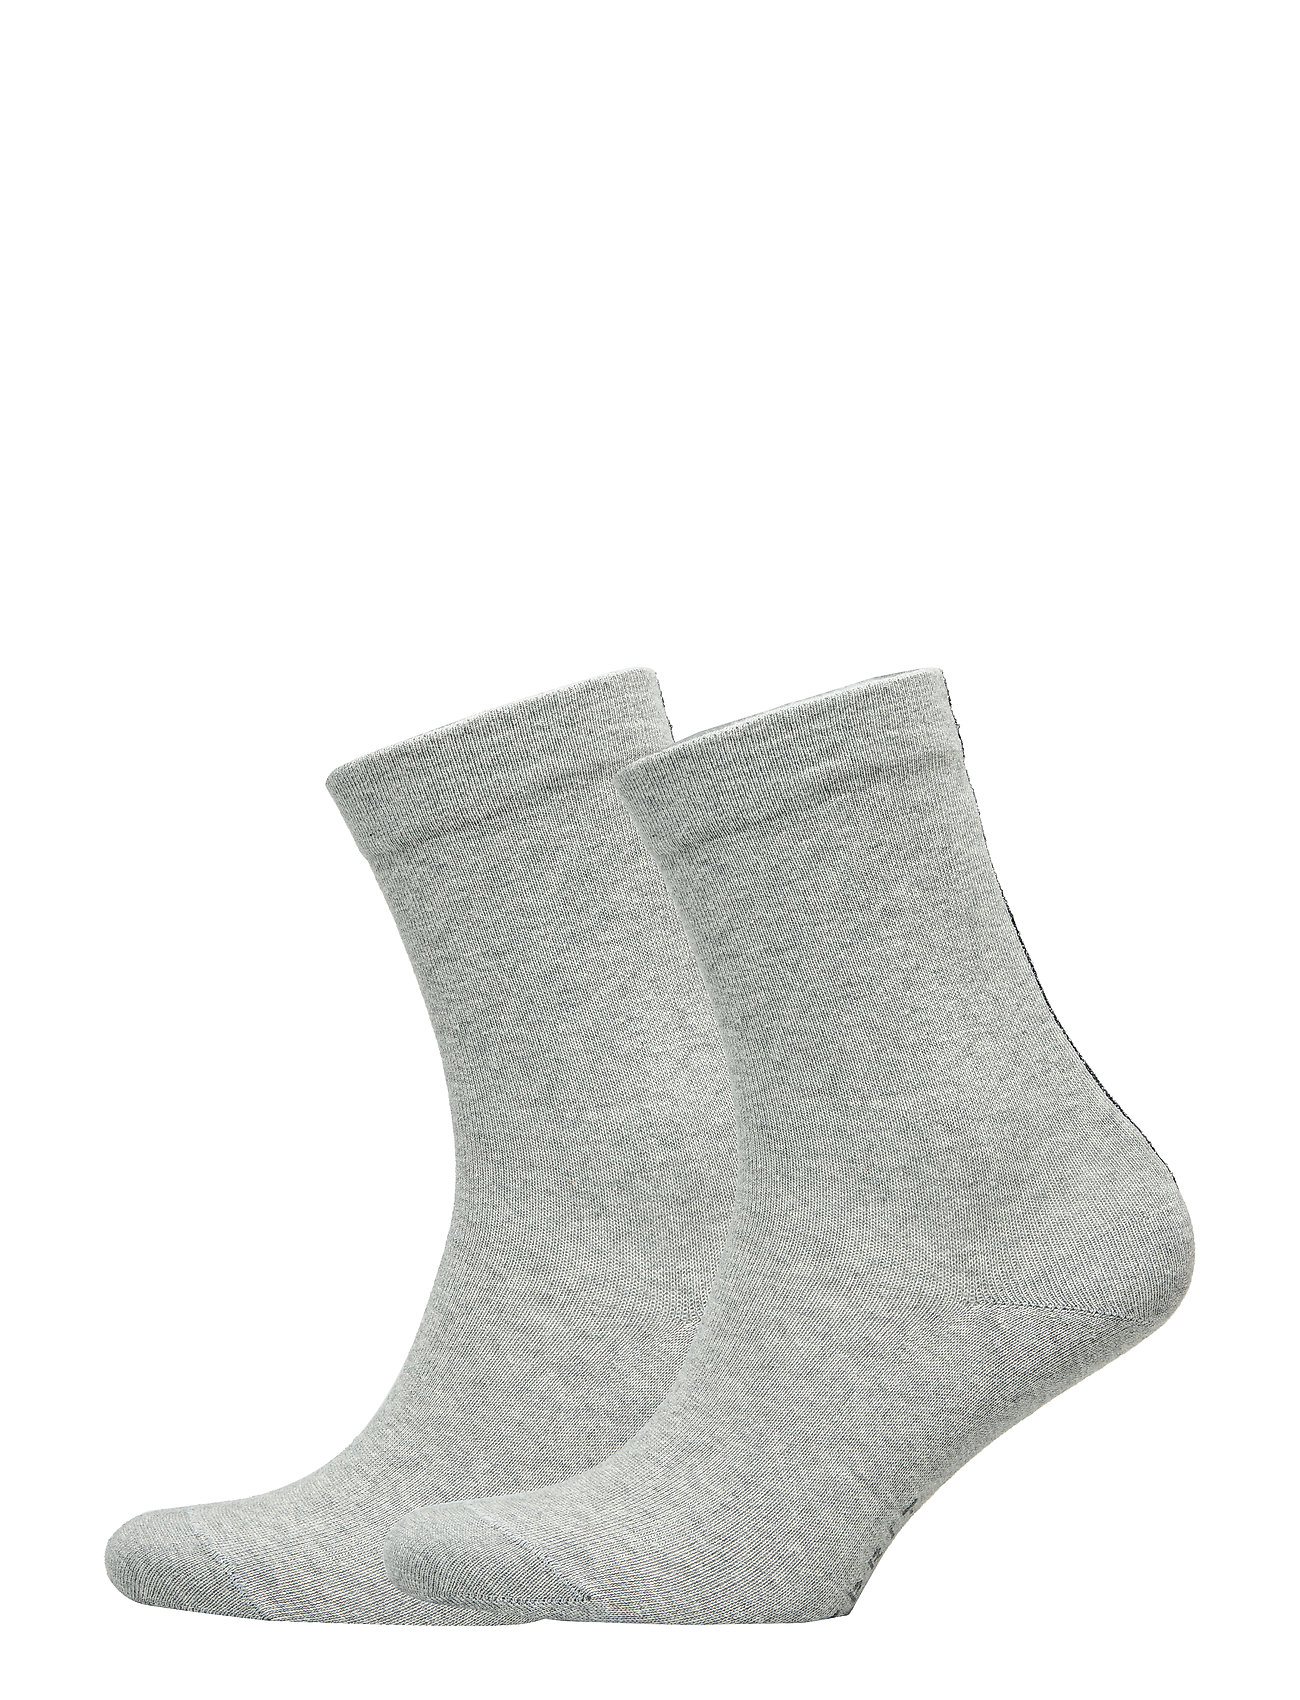 Esprit Socks Acc. Str. SO 2P - LIGHT GREY